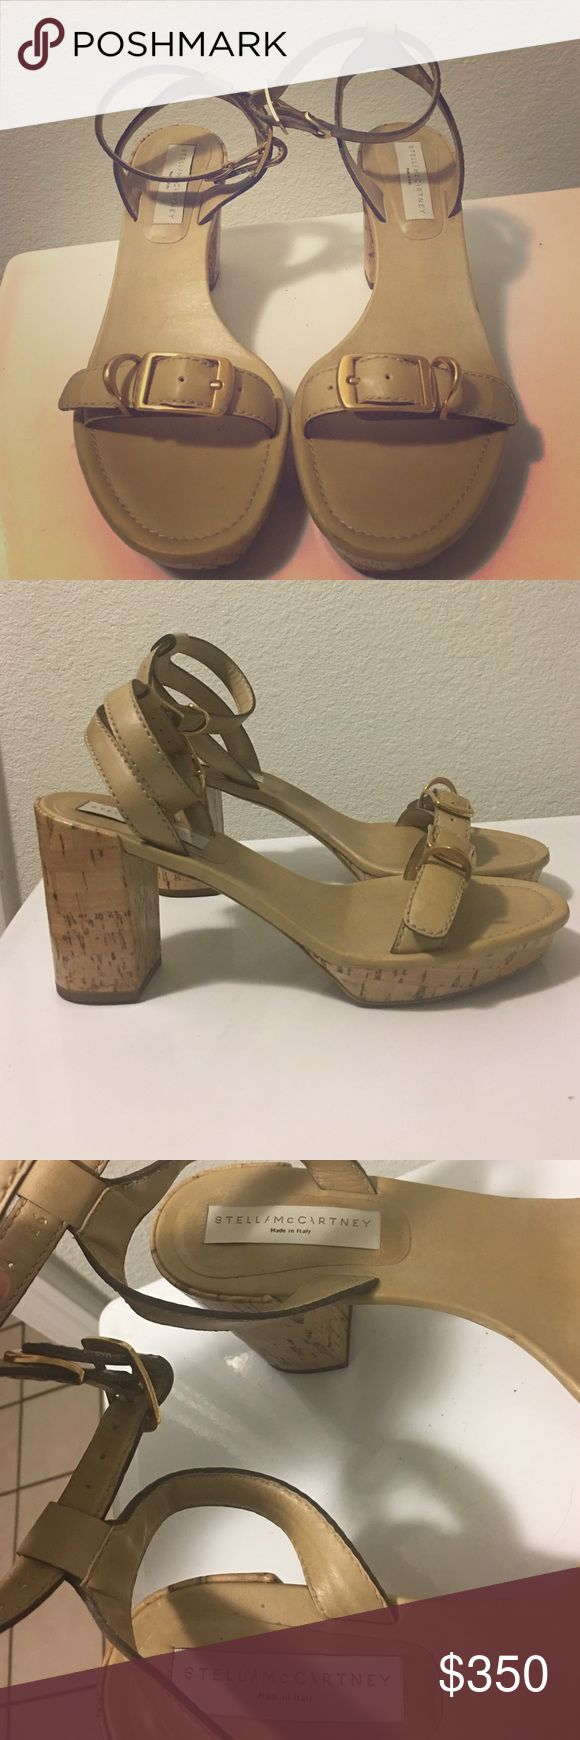 Stella McCartney Cream Heel Sandals Not photogenic but it's really cute in person. It's so chic and edgy at the same time. Stella McCartney Shoes Platforms